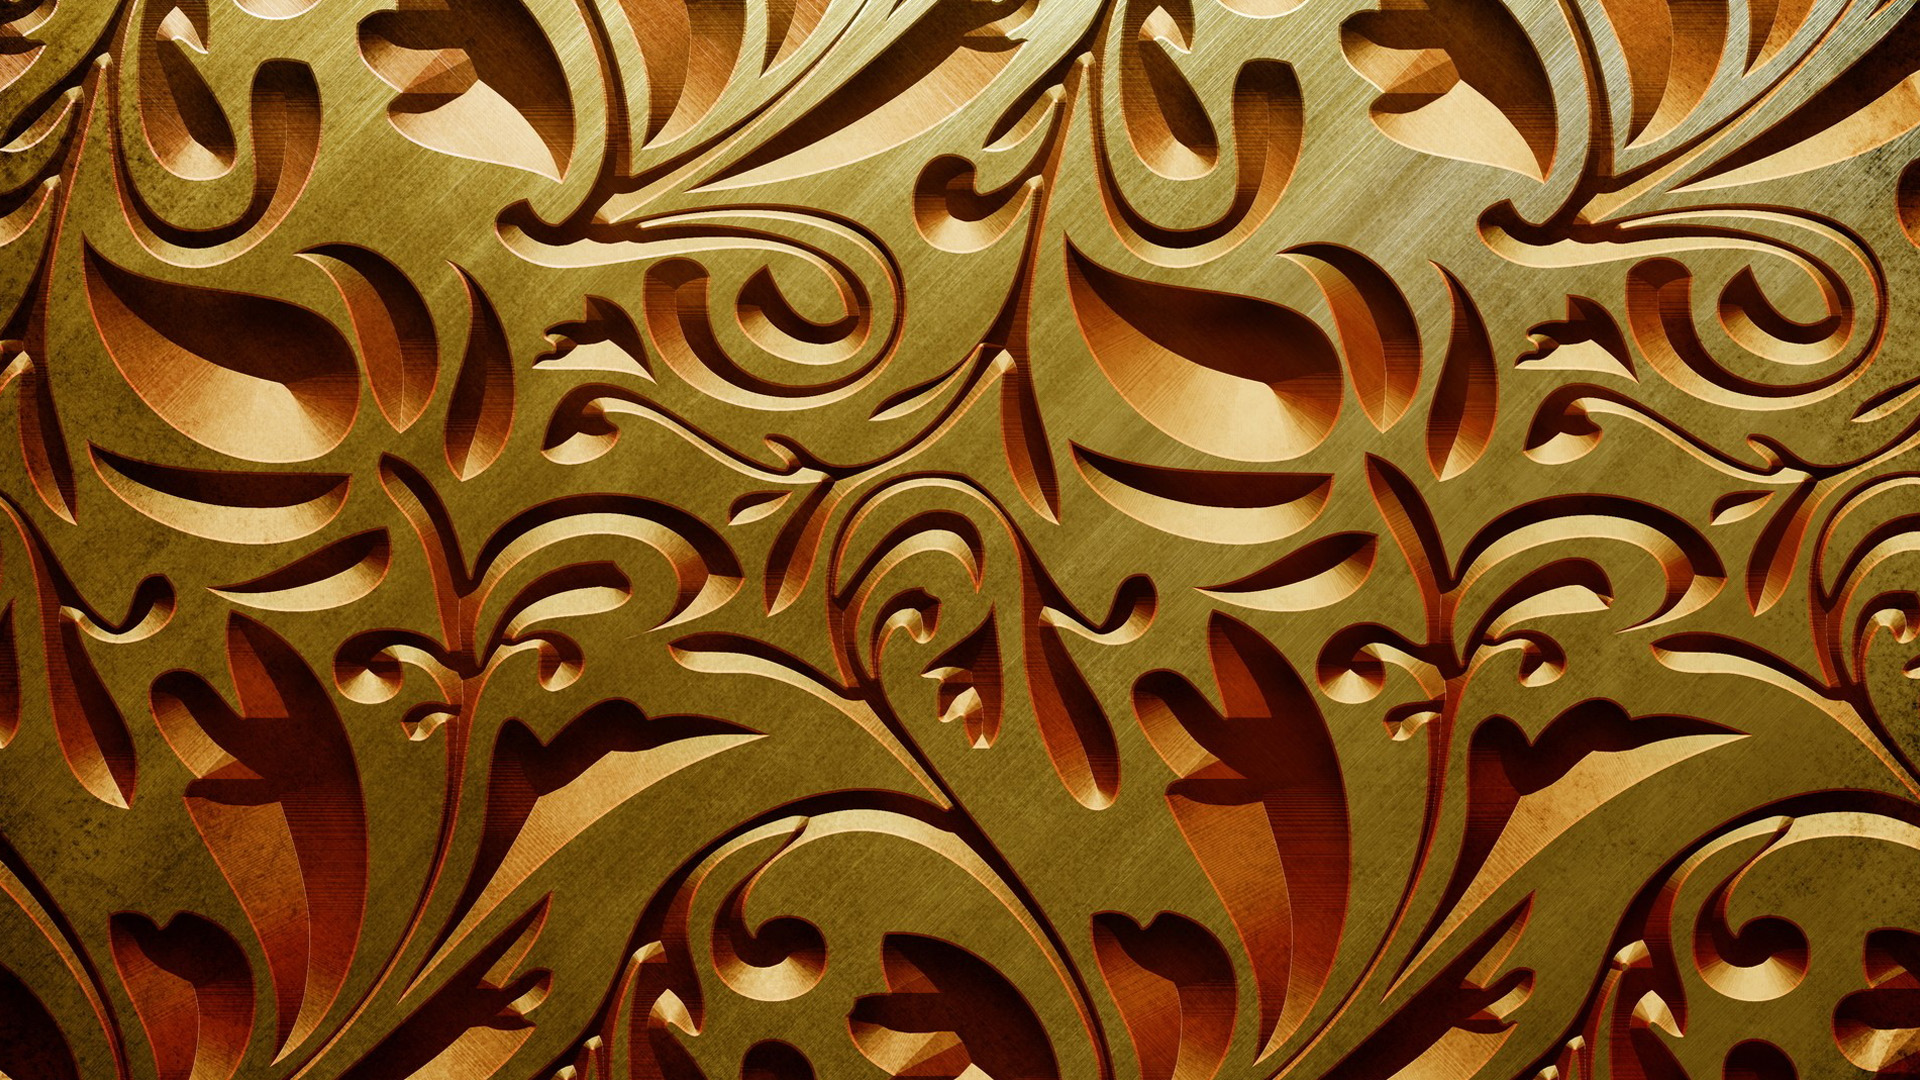 Gold-color-1920x1080-1920%C3%971080-wallpaper-wp3606240